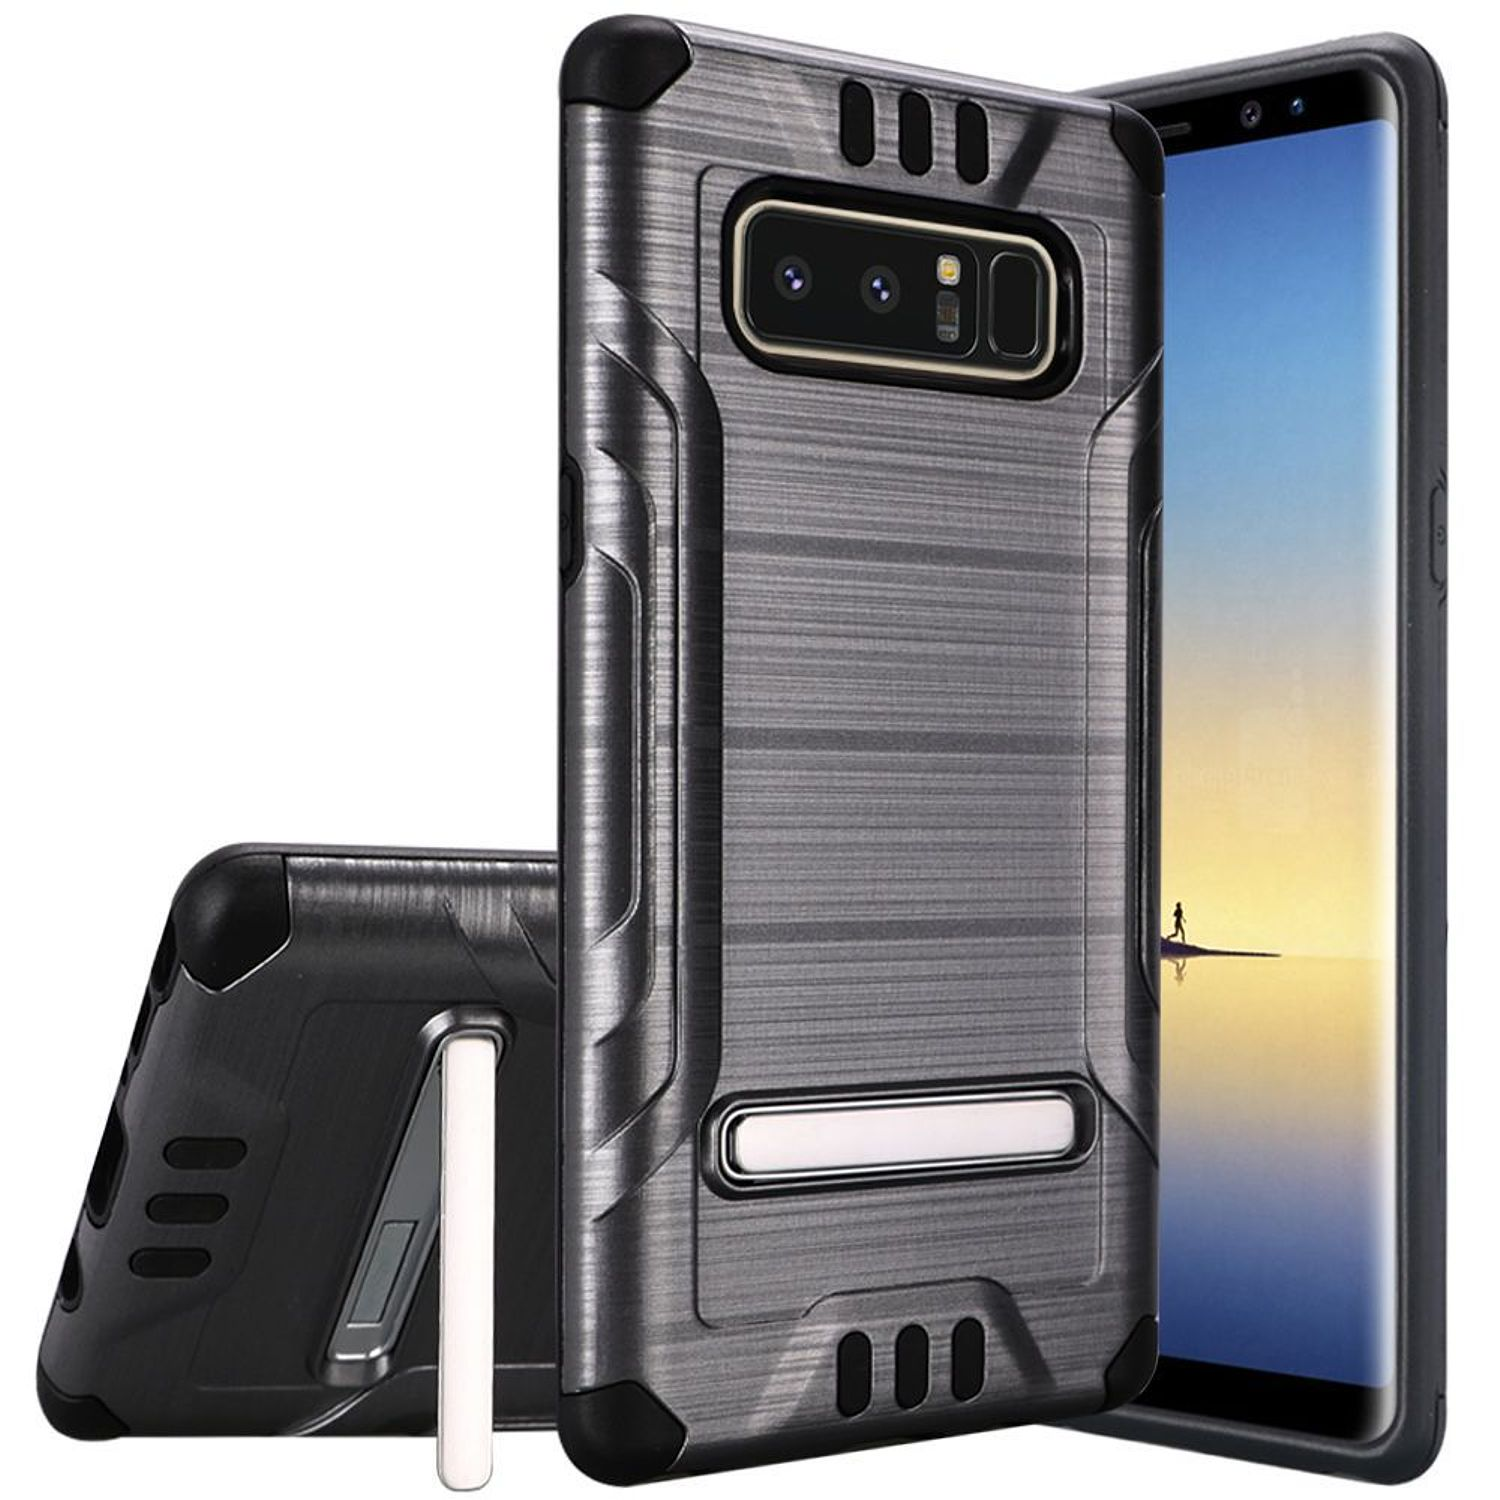 Samsung Galaxy Note 8 Case, by HR Wireless Shockproof Dual Layer Hybrid Stand Brushed Hard Plastic/Soft TPU Rubber Case Cover For Samsung Galaxy Note 8, Gray/Black